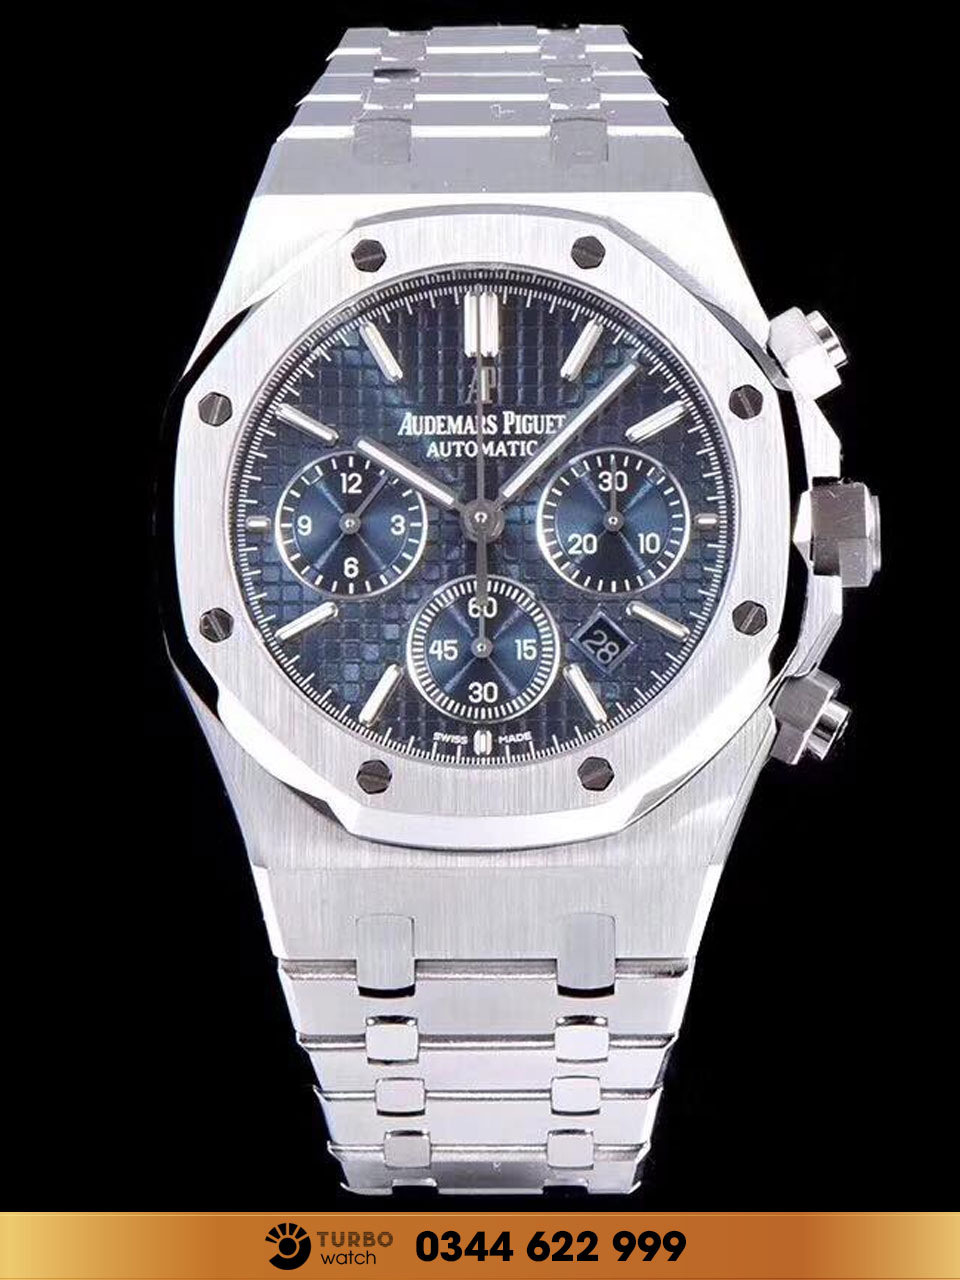 Audemas piguet ROYAL OAK CHRONOGRAPH BLUE DIAL fake 1-1 cao cấp